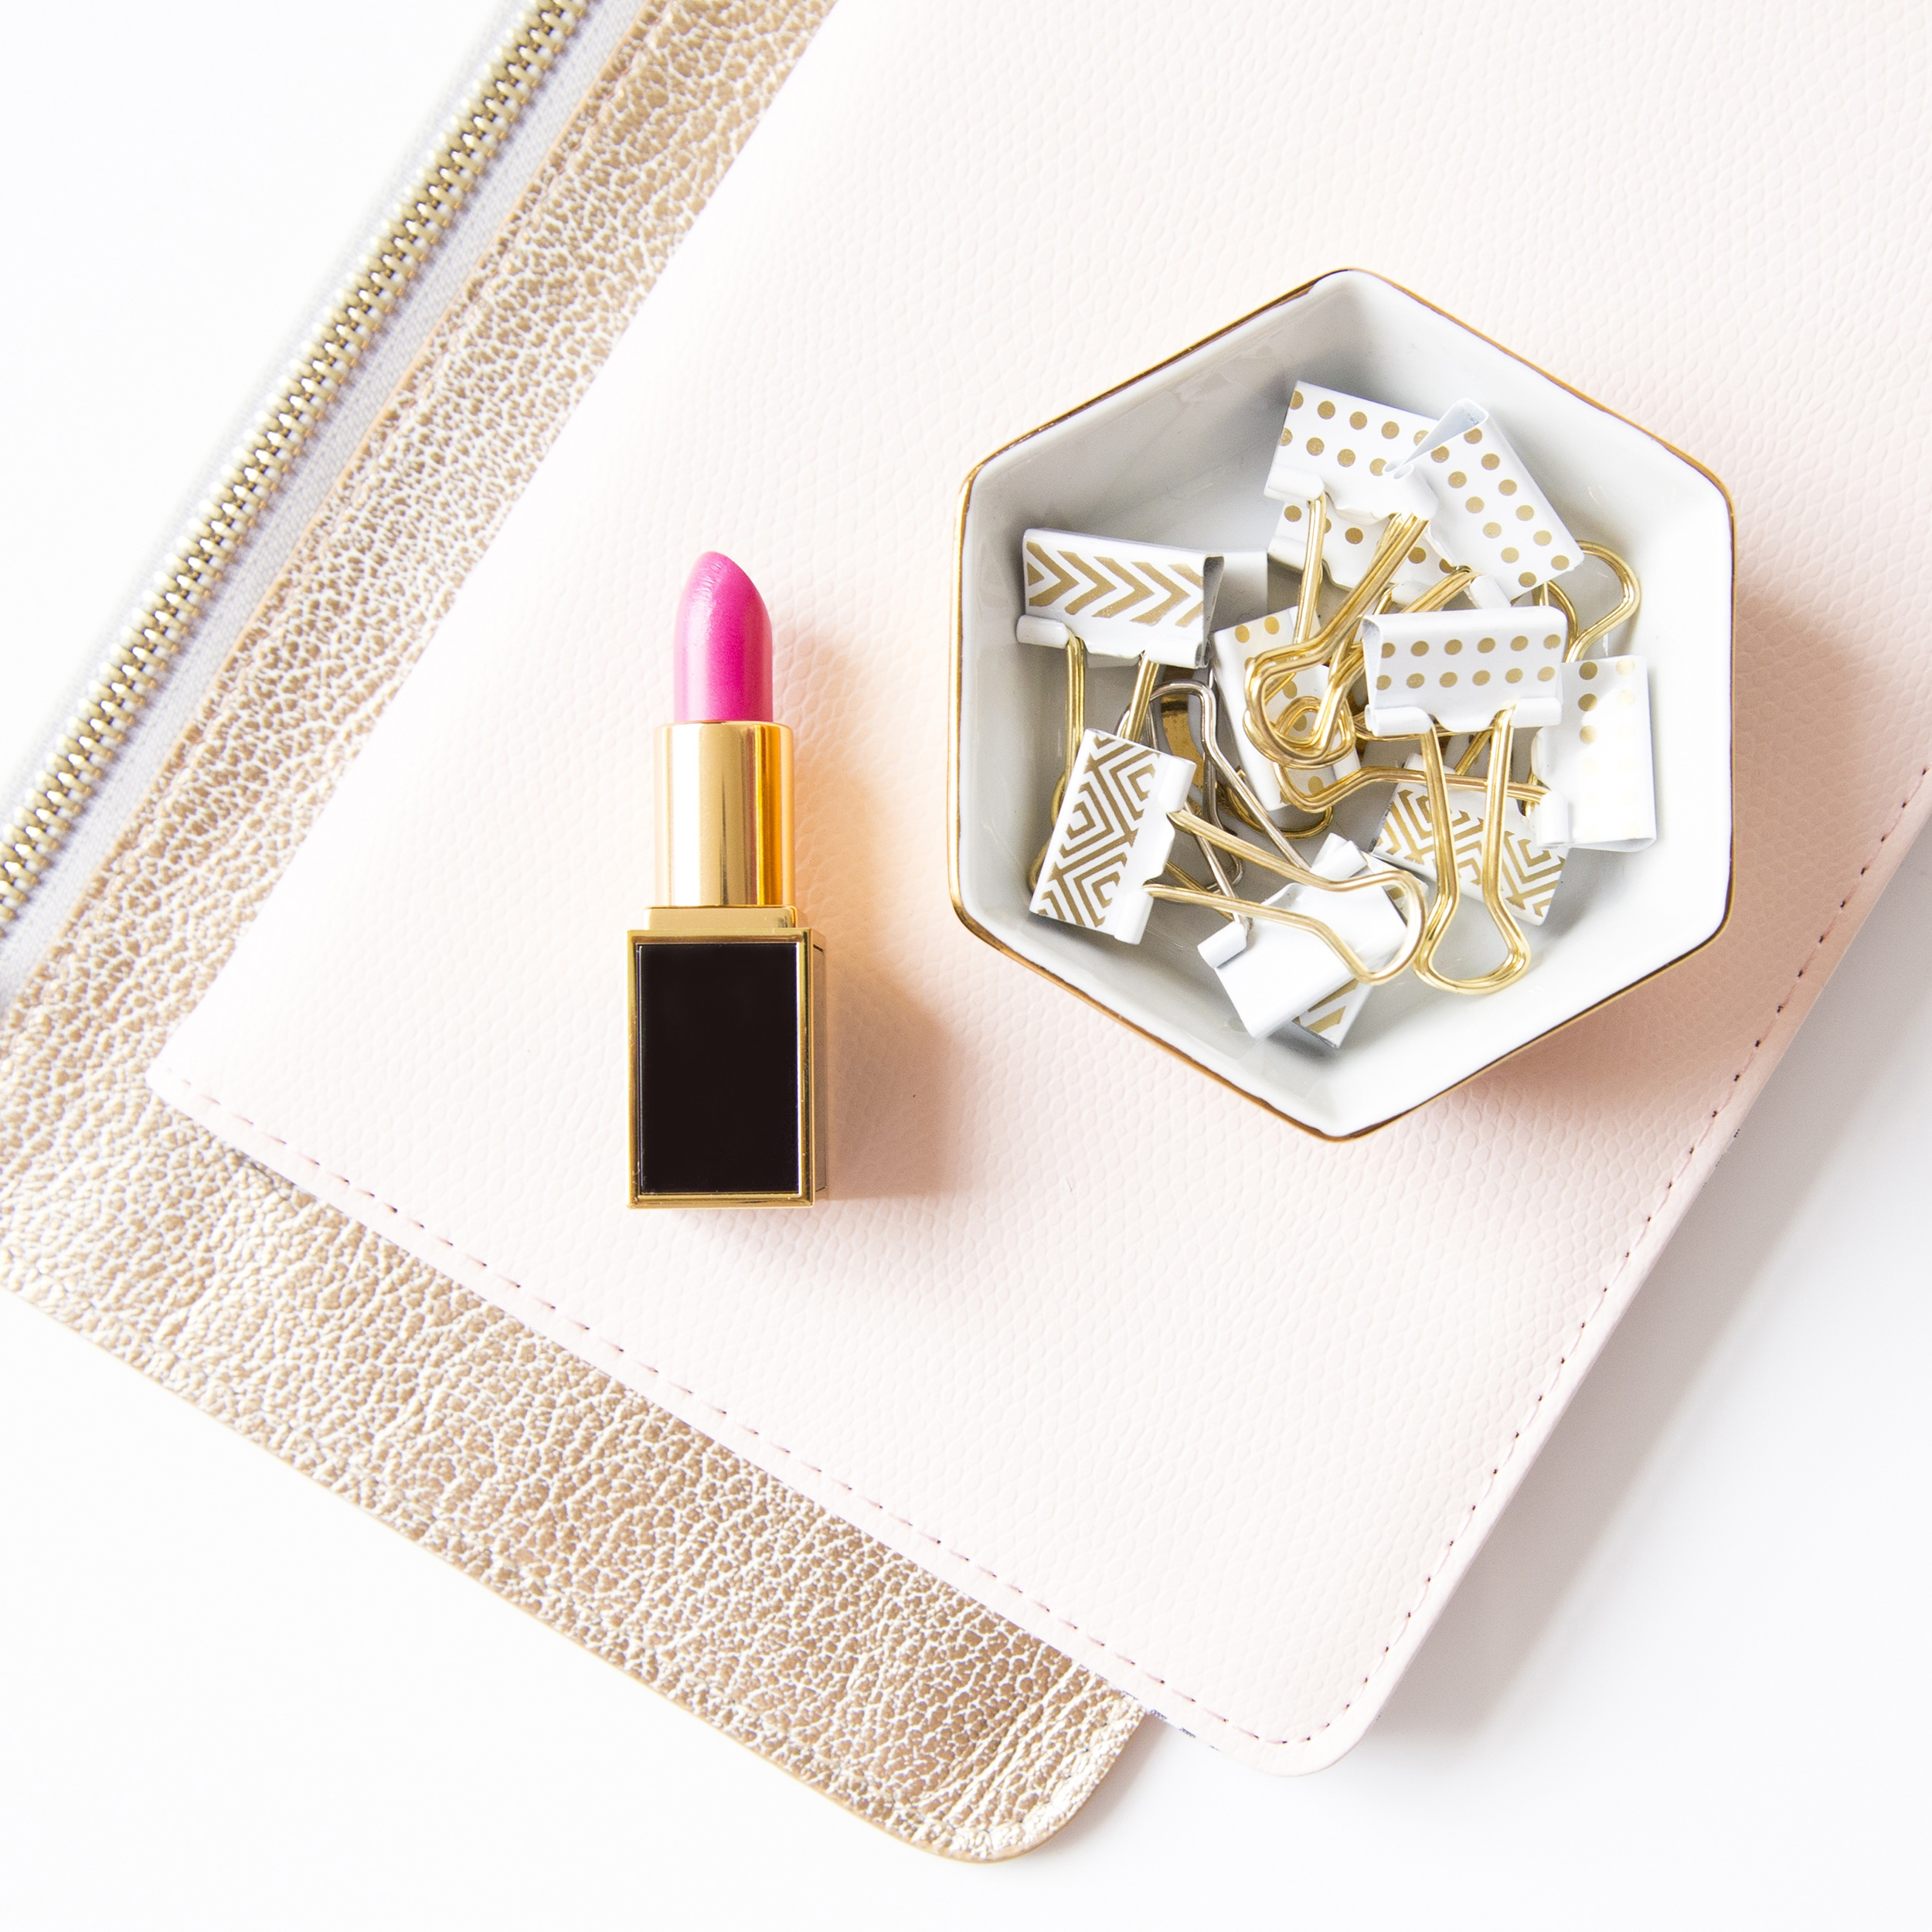 pink lipstick and gold clips.jpg